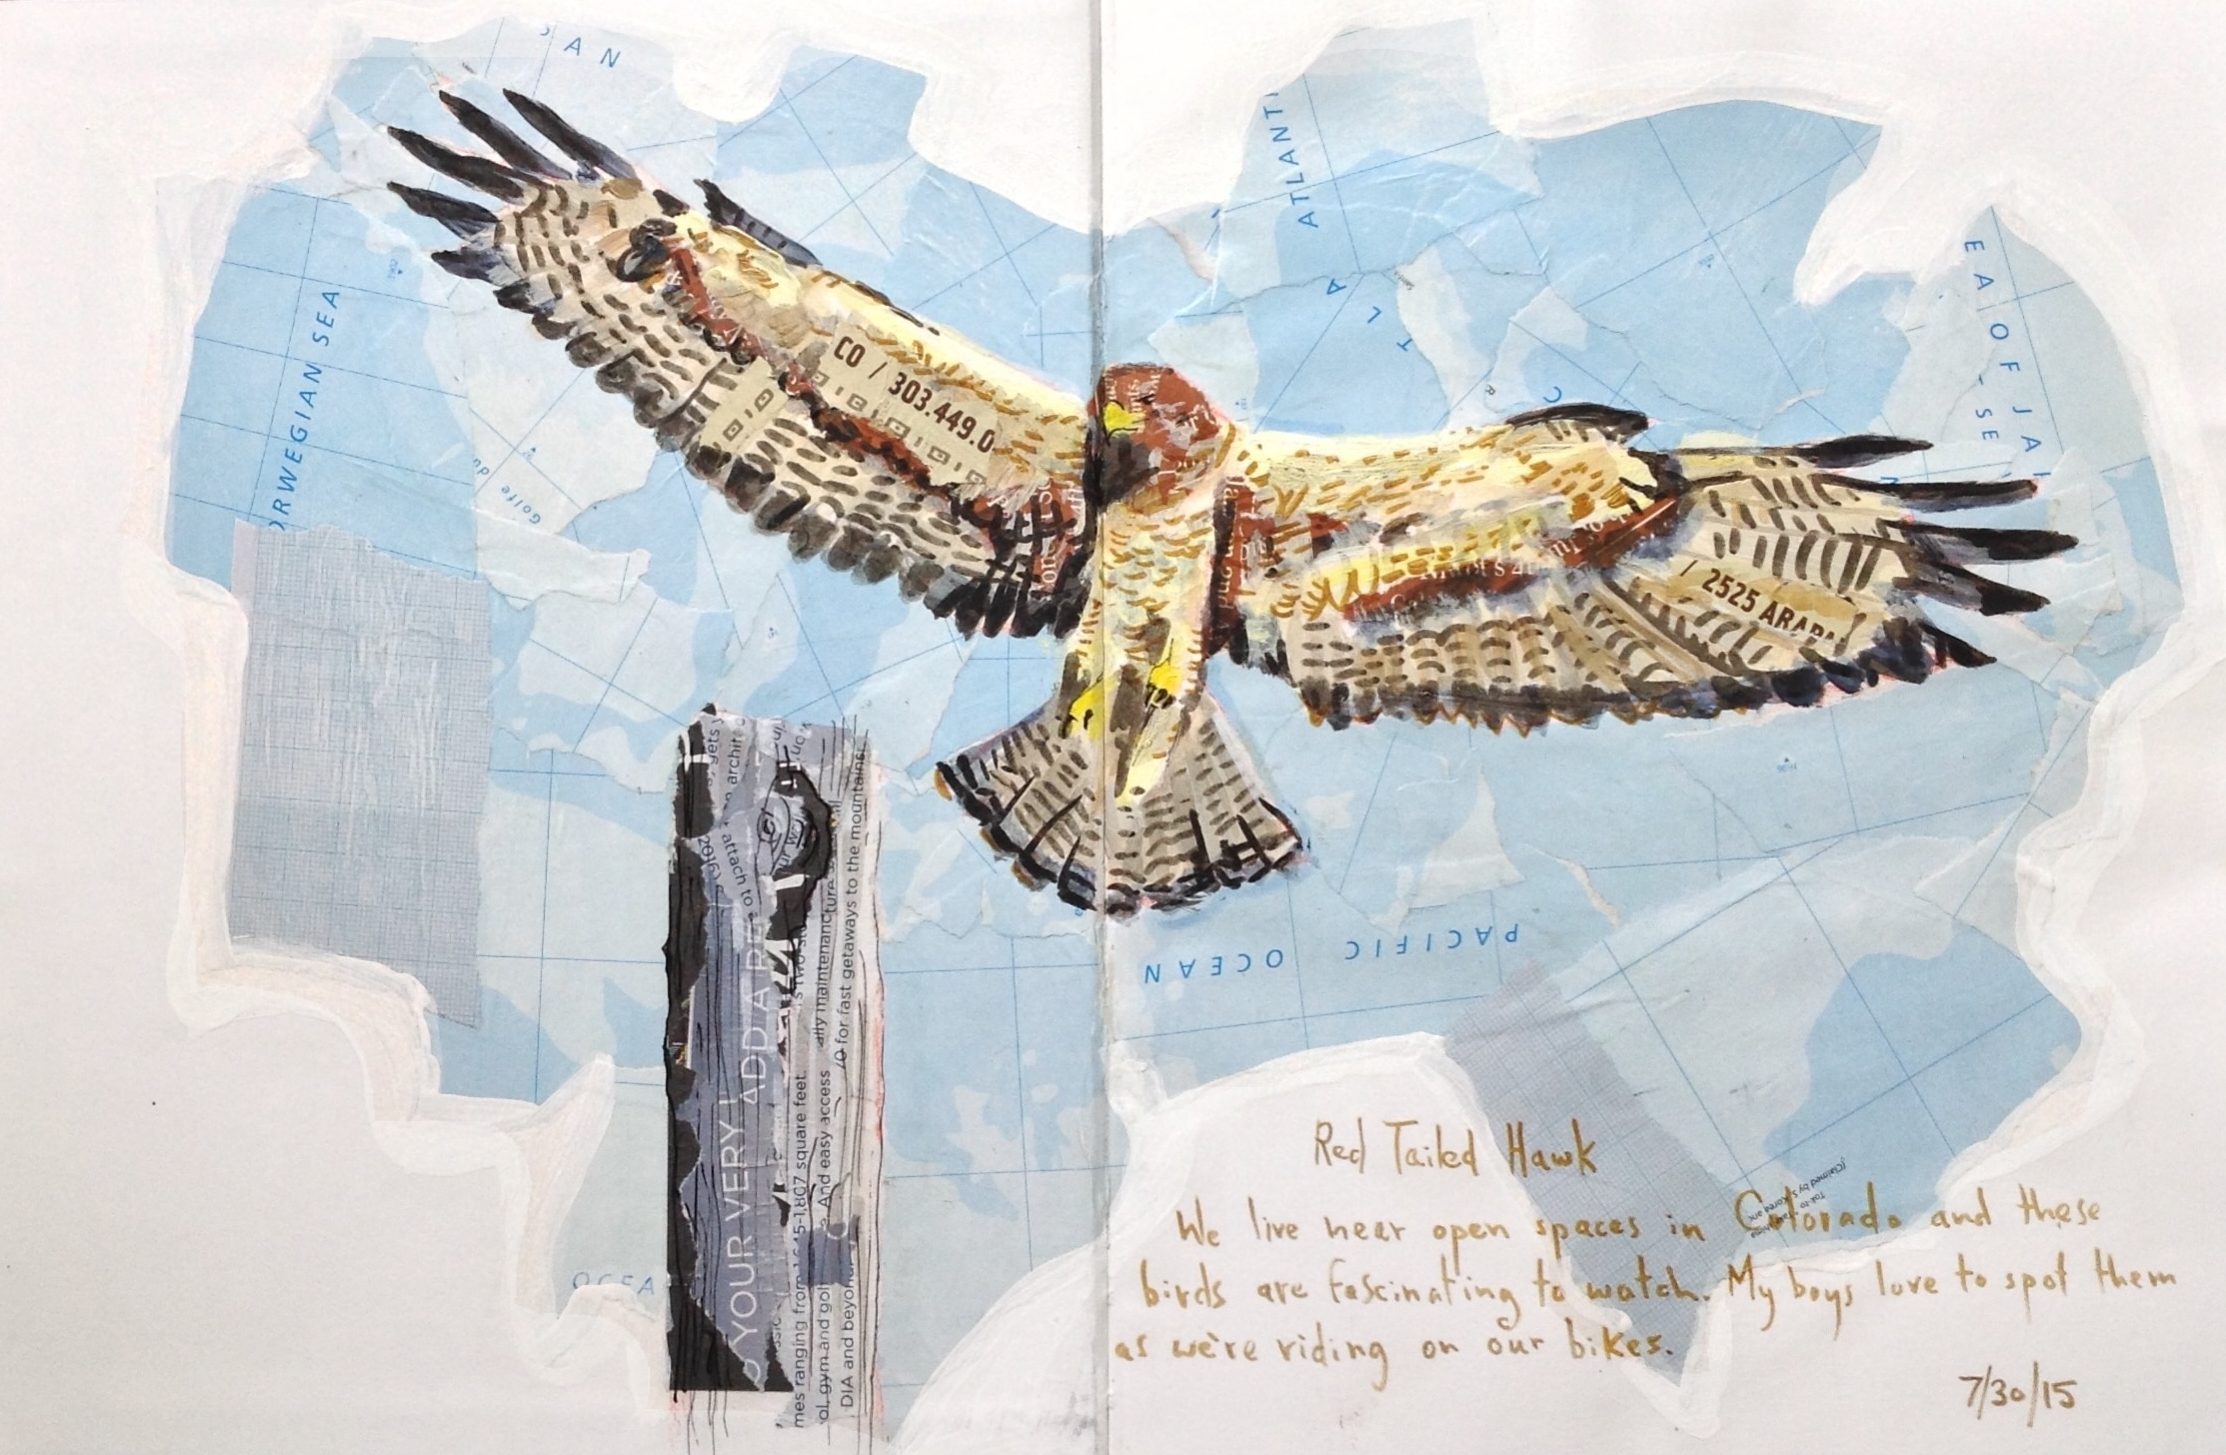 <b>Red-tailed Hawk</b>